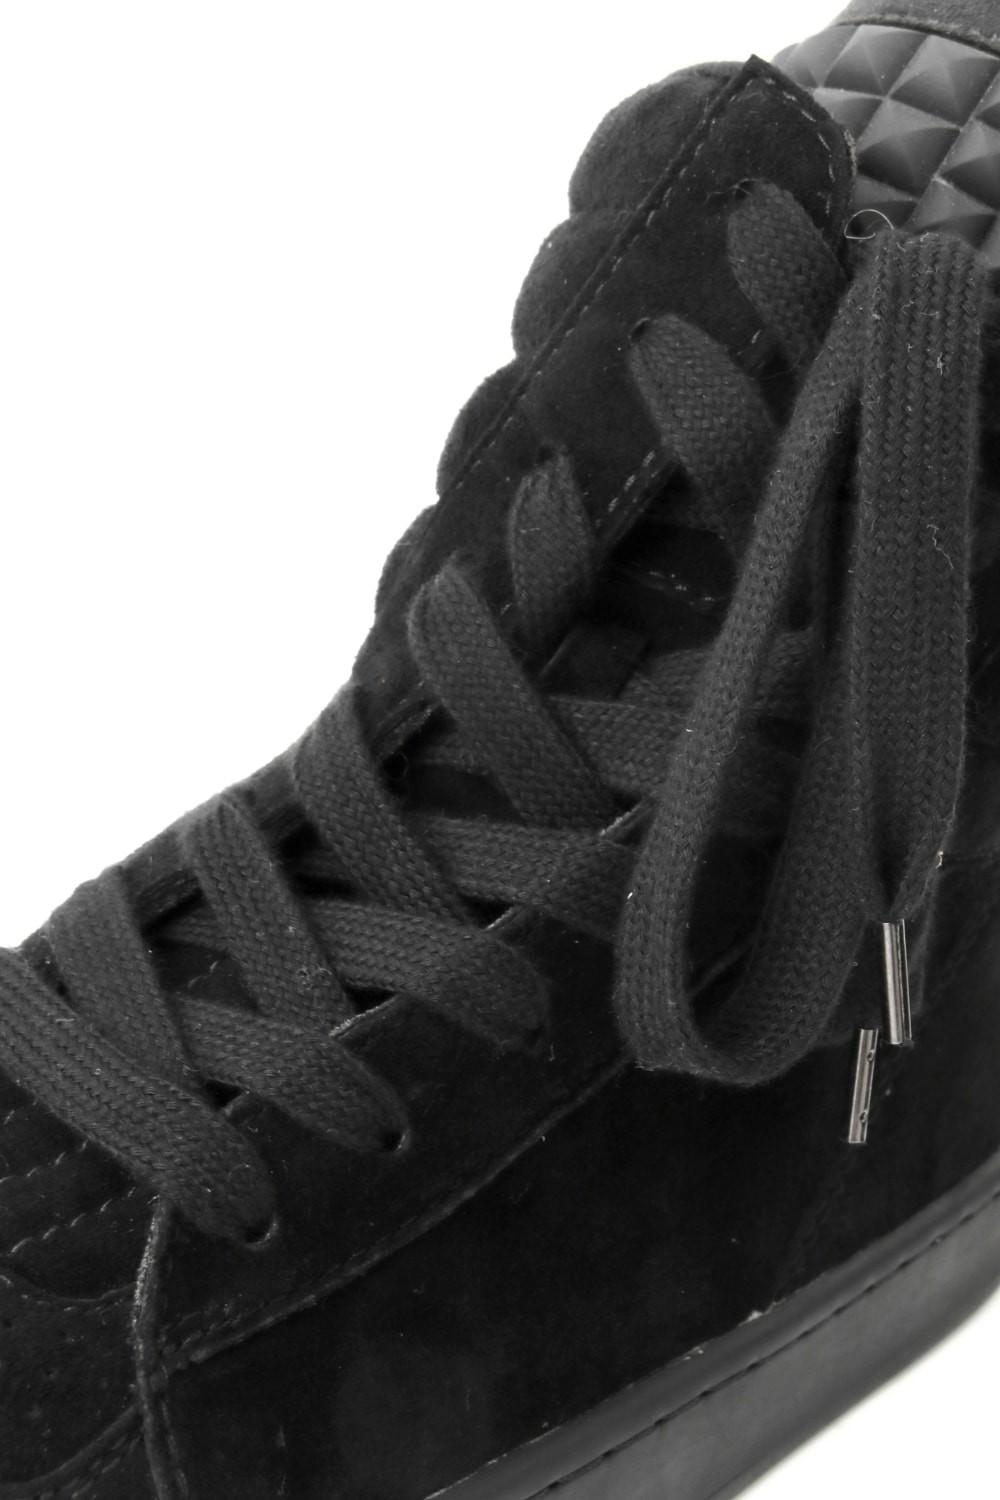 DIET BUTCHER SLIM SKIN [DBSS] 16AW Twisted Sneakers BLACK SUEDE